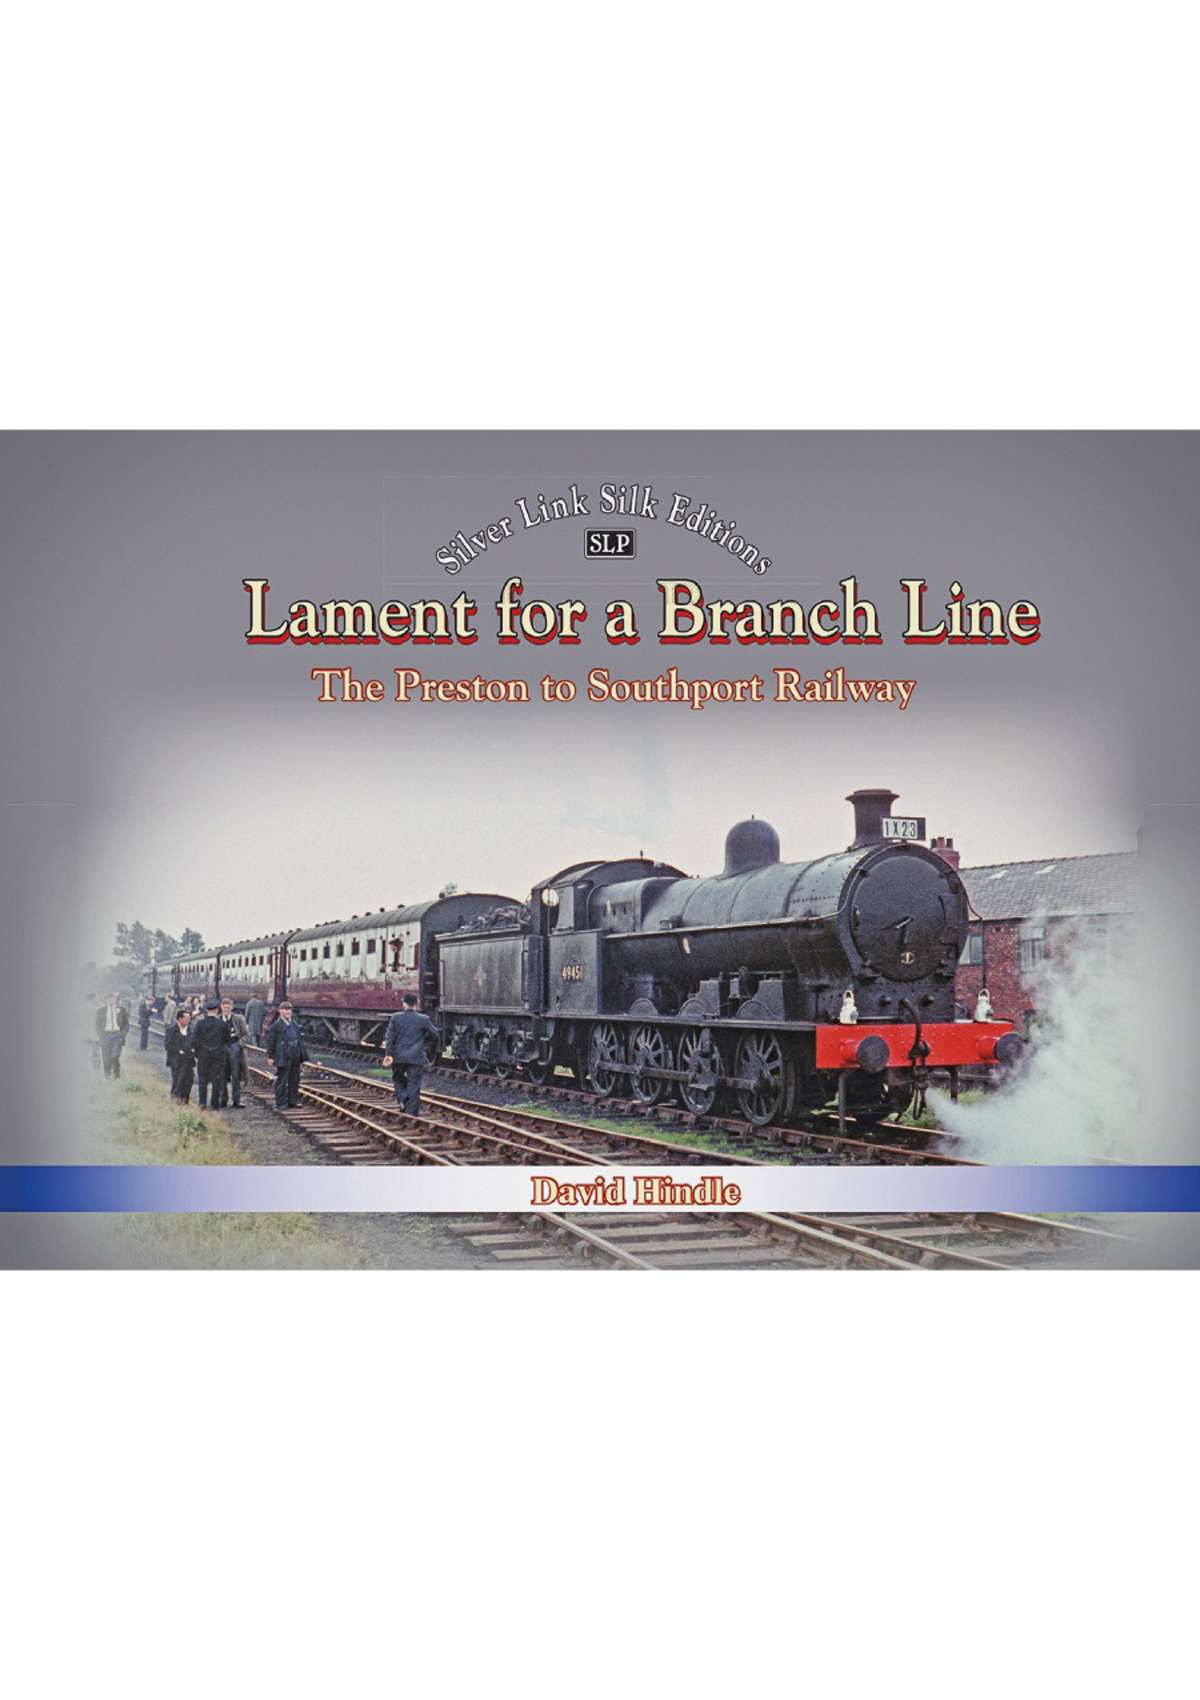 Book tells history of Preston to Southport railway line